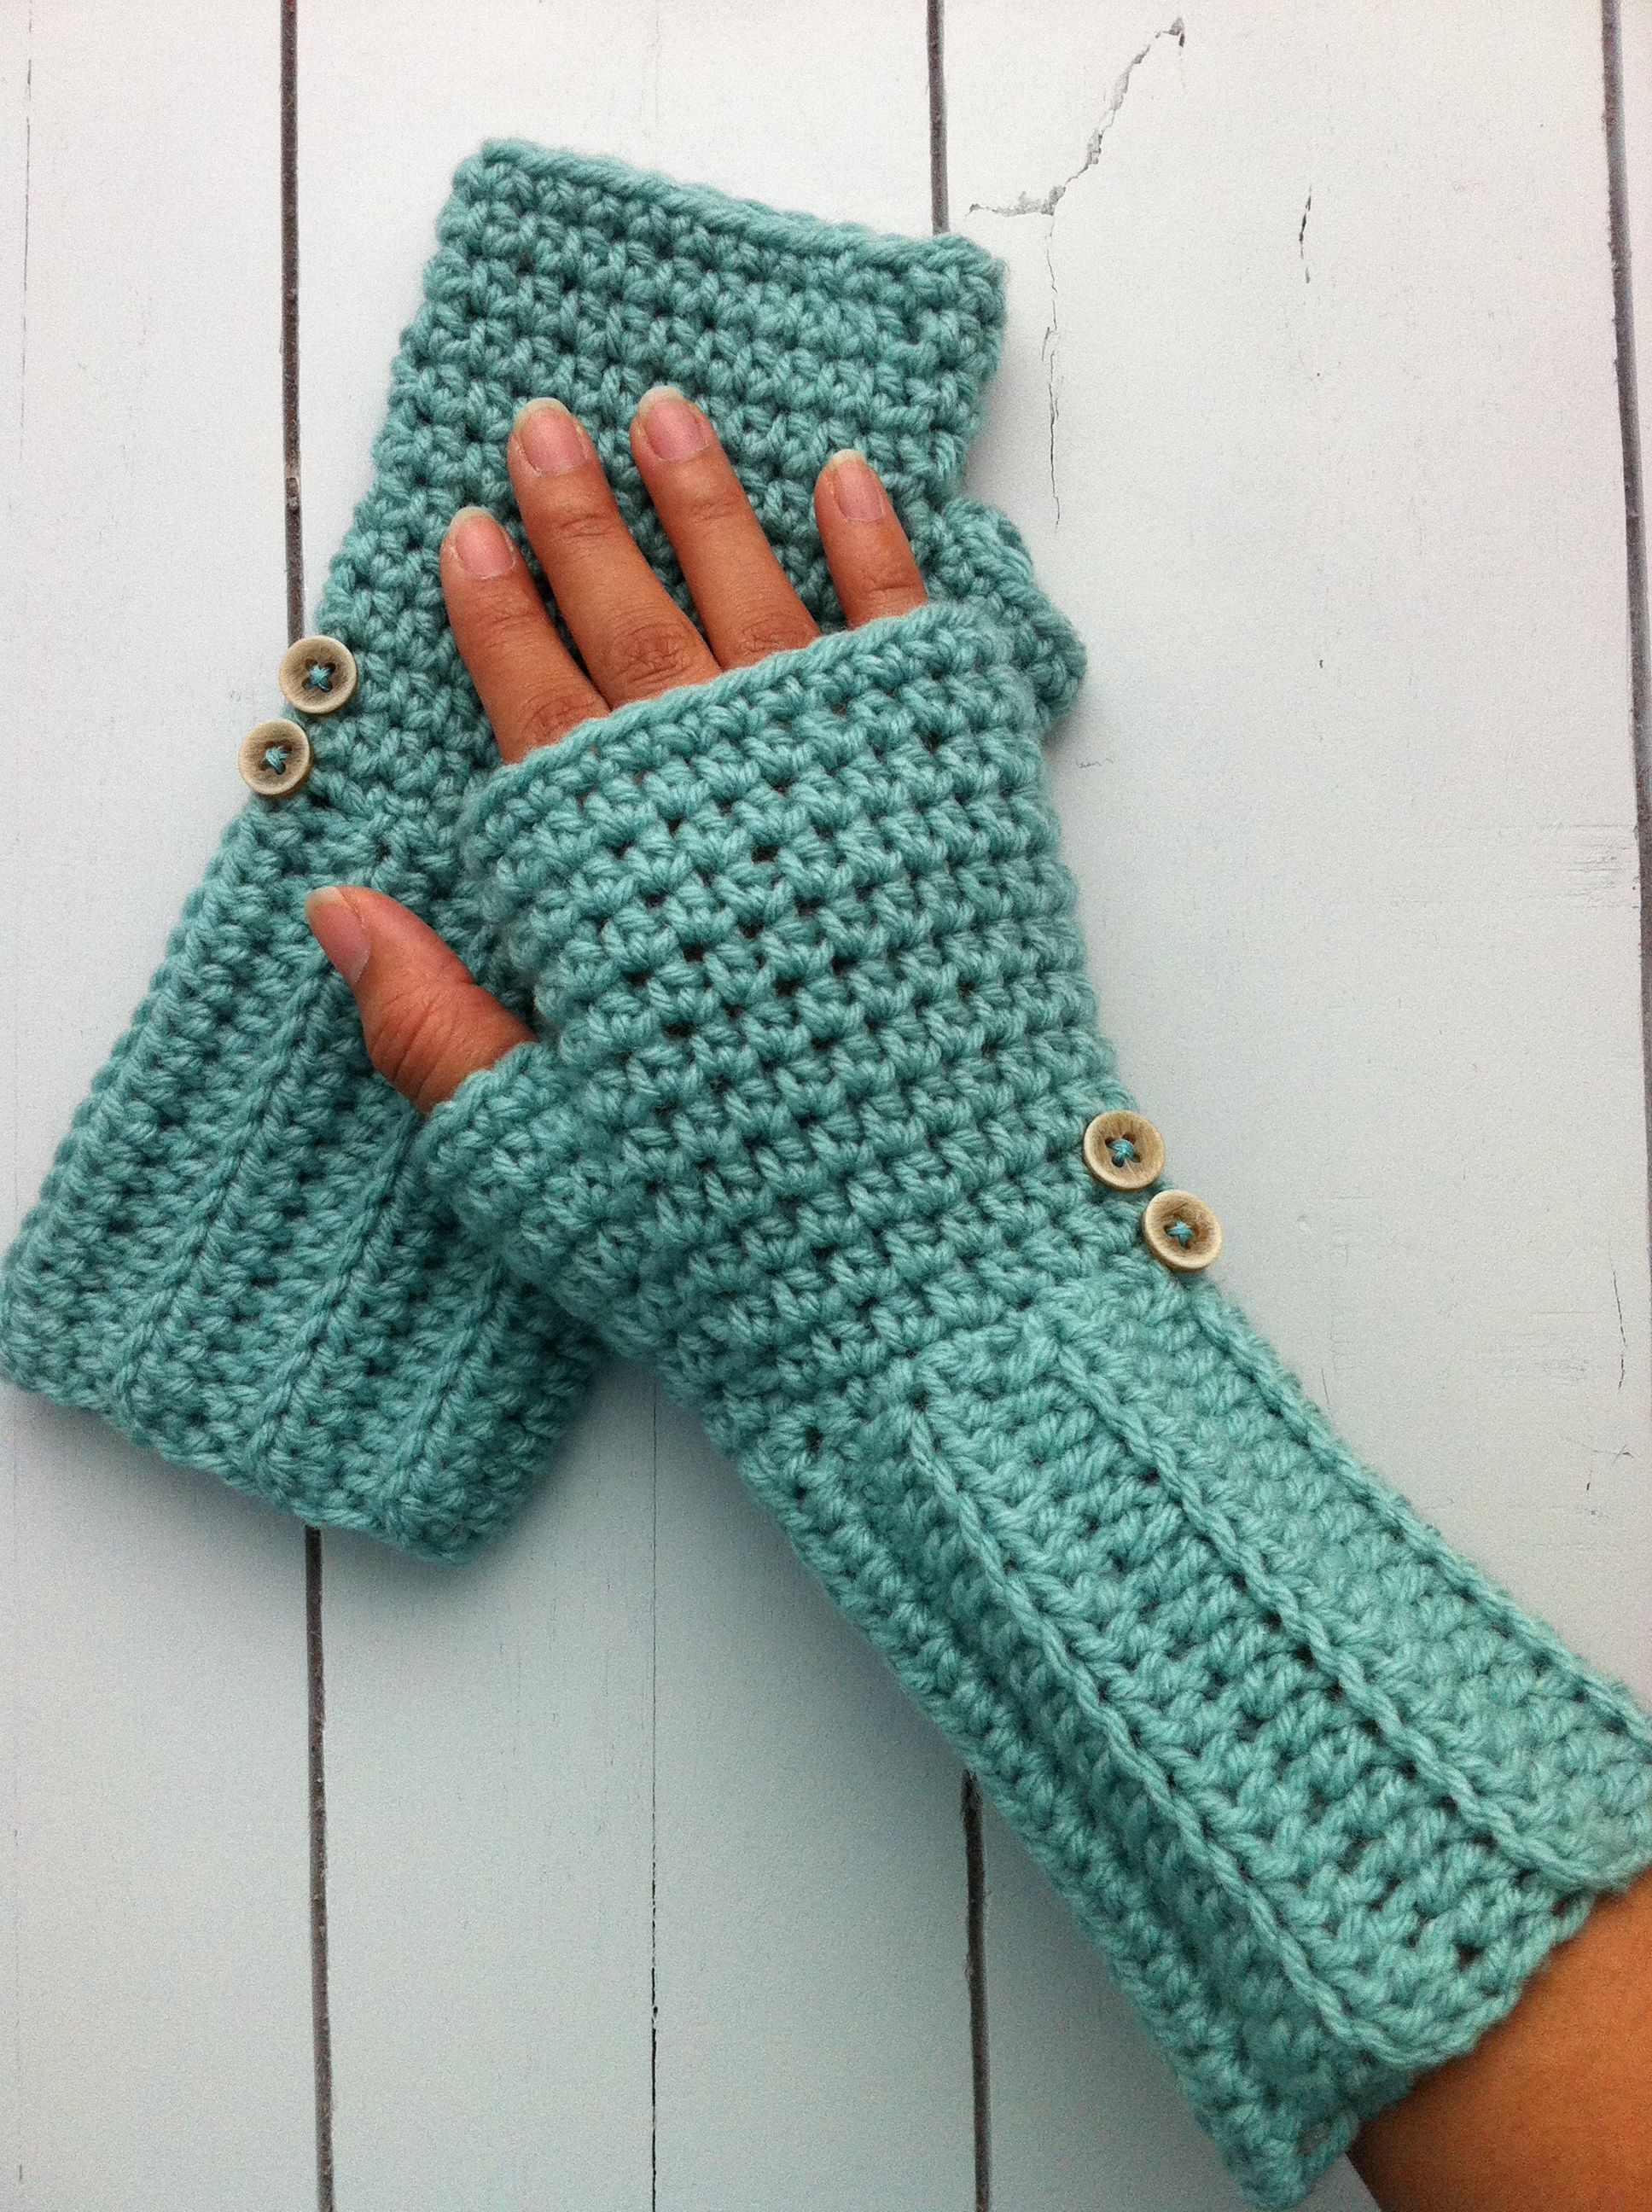 Fingerless gloves darn yarn - Would Love This For When I M Working And Can T Wear Gloves Can T Work Camera Dials With Gloves On Crochet Fingerless Gloves No Pattern But Looks Very